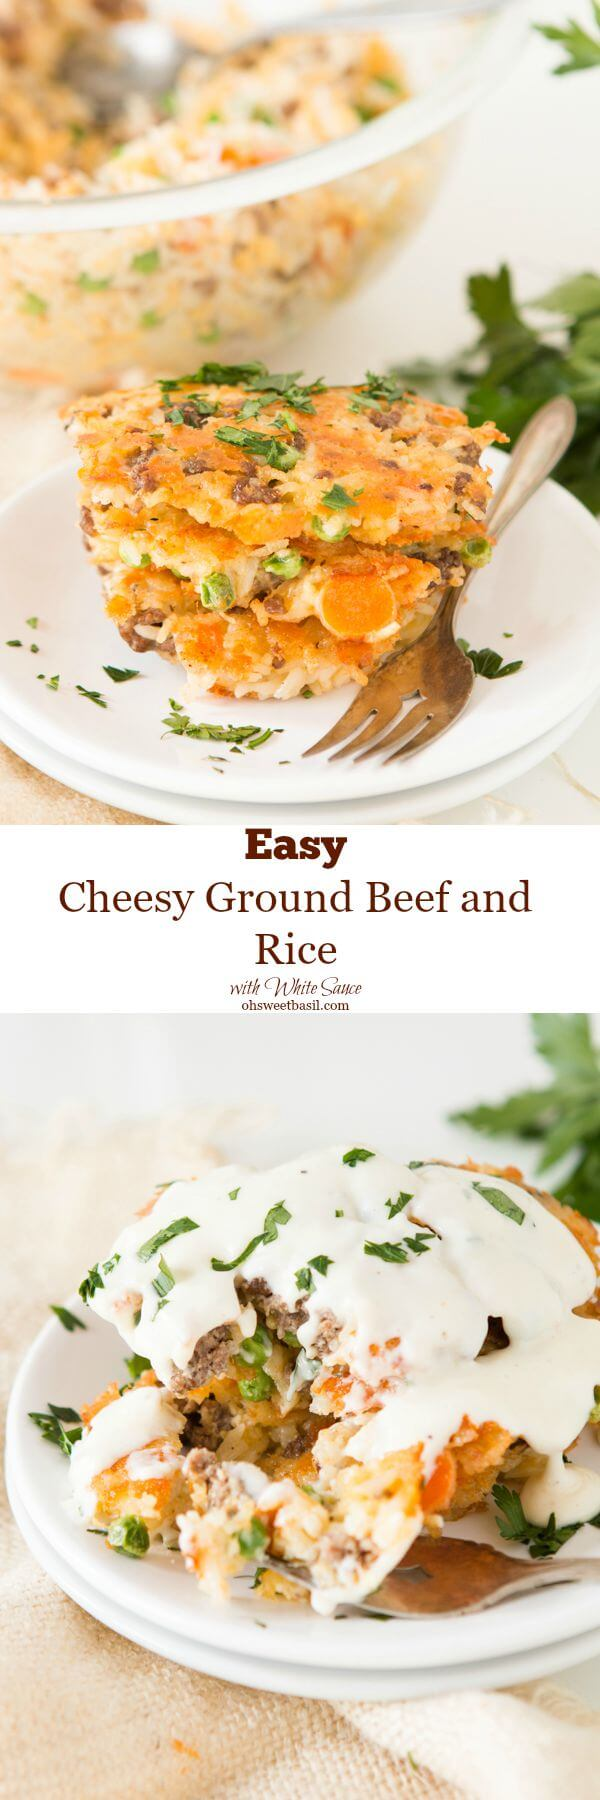 On of our favorite meals lately just uses the leftovers in the fridge, easy cheesy ground beef and rice cakes! ohsweetbasil.com